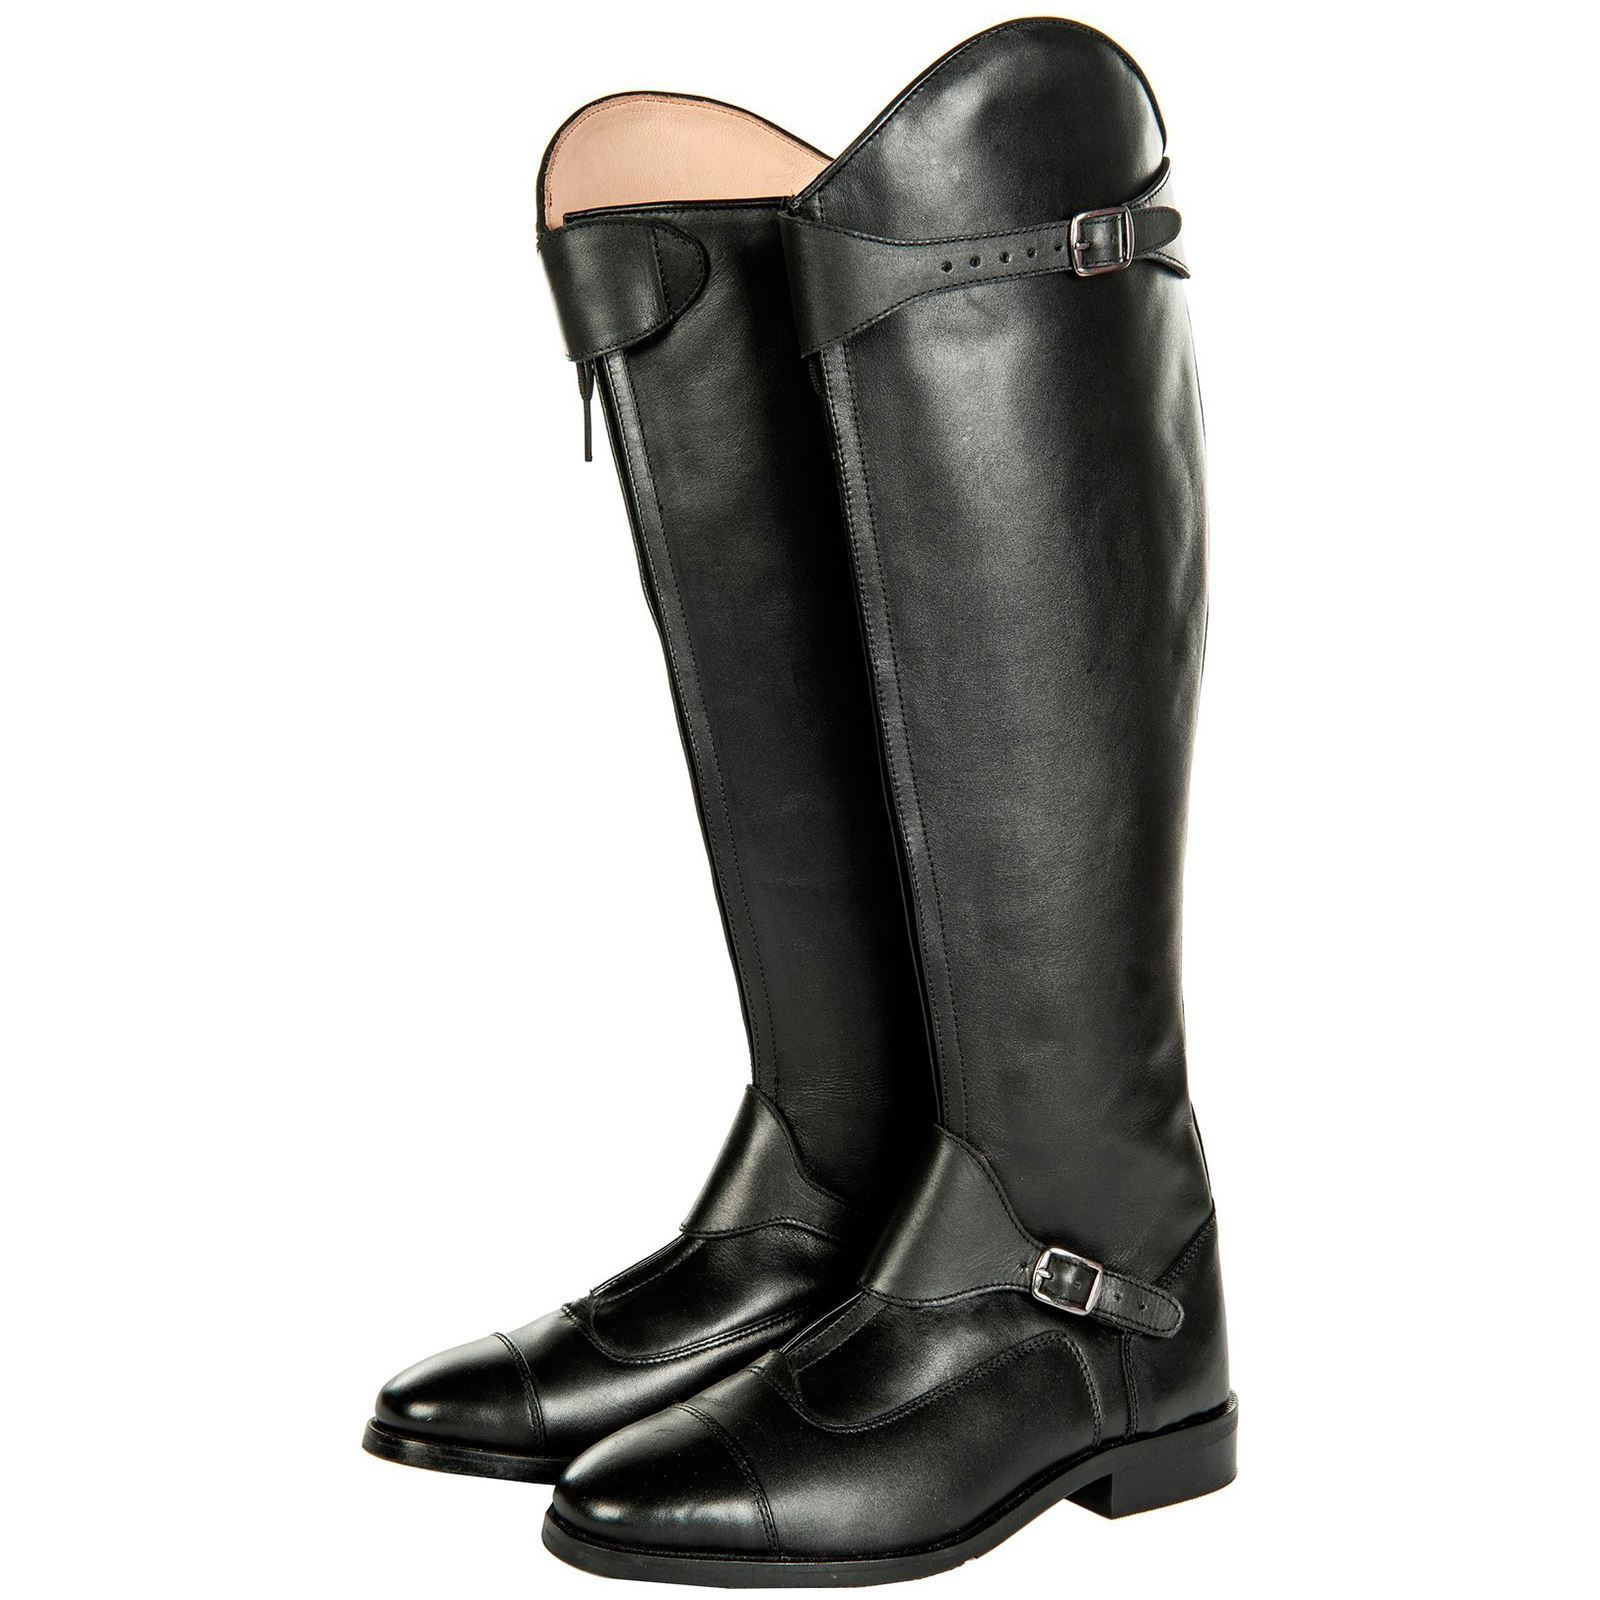 28fa26800 Details about HKM Equestrian Adults Polo Soft Leather Zipper Narrow Long Horse  Riding Boots